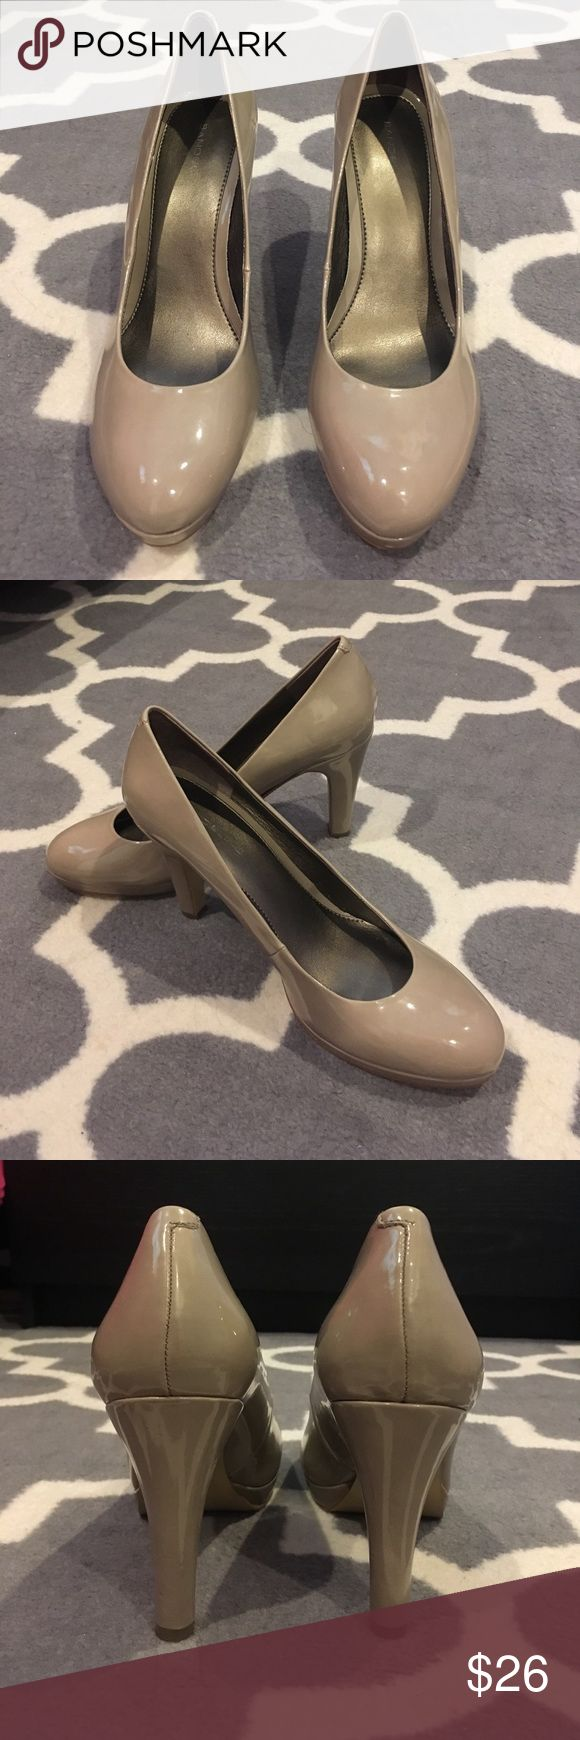 Beige Pumps Beige pumps with a glossy finish. Silver metallic inner lining. Approx. 3 inch heel. Size 9. From DSW. Bandolino Shoes Heels